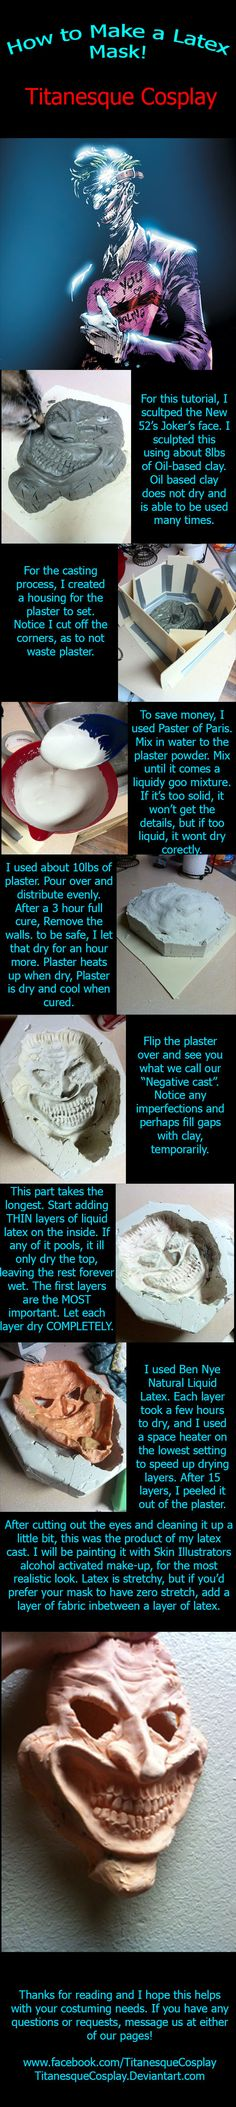 How to Make a Latex Mask by TitanesqueCosplay.deviantart.com on @deviantART